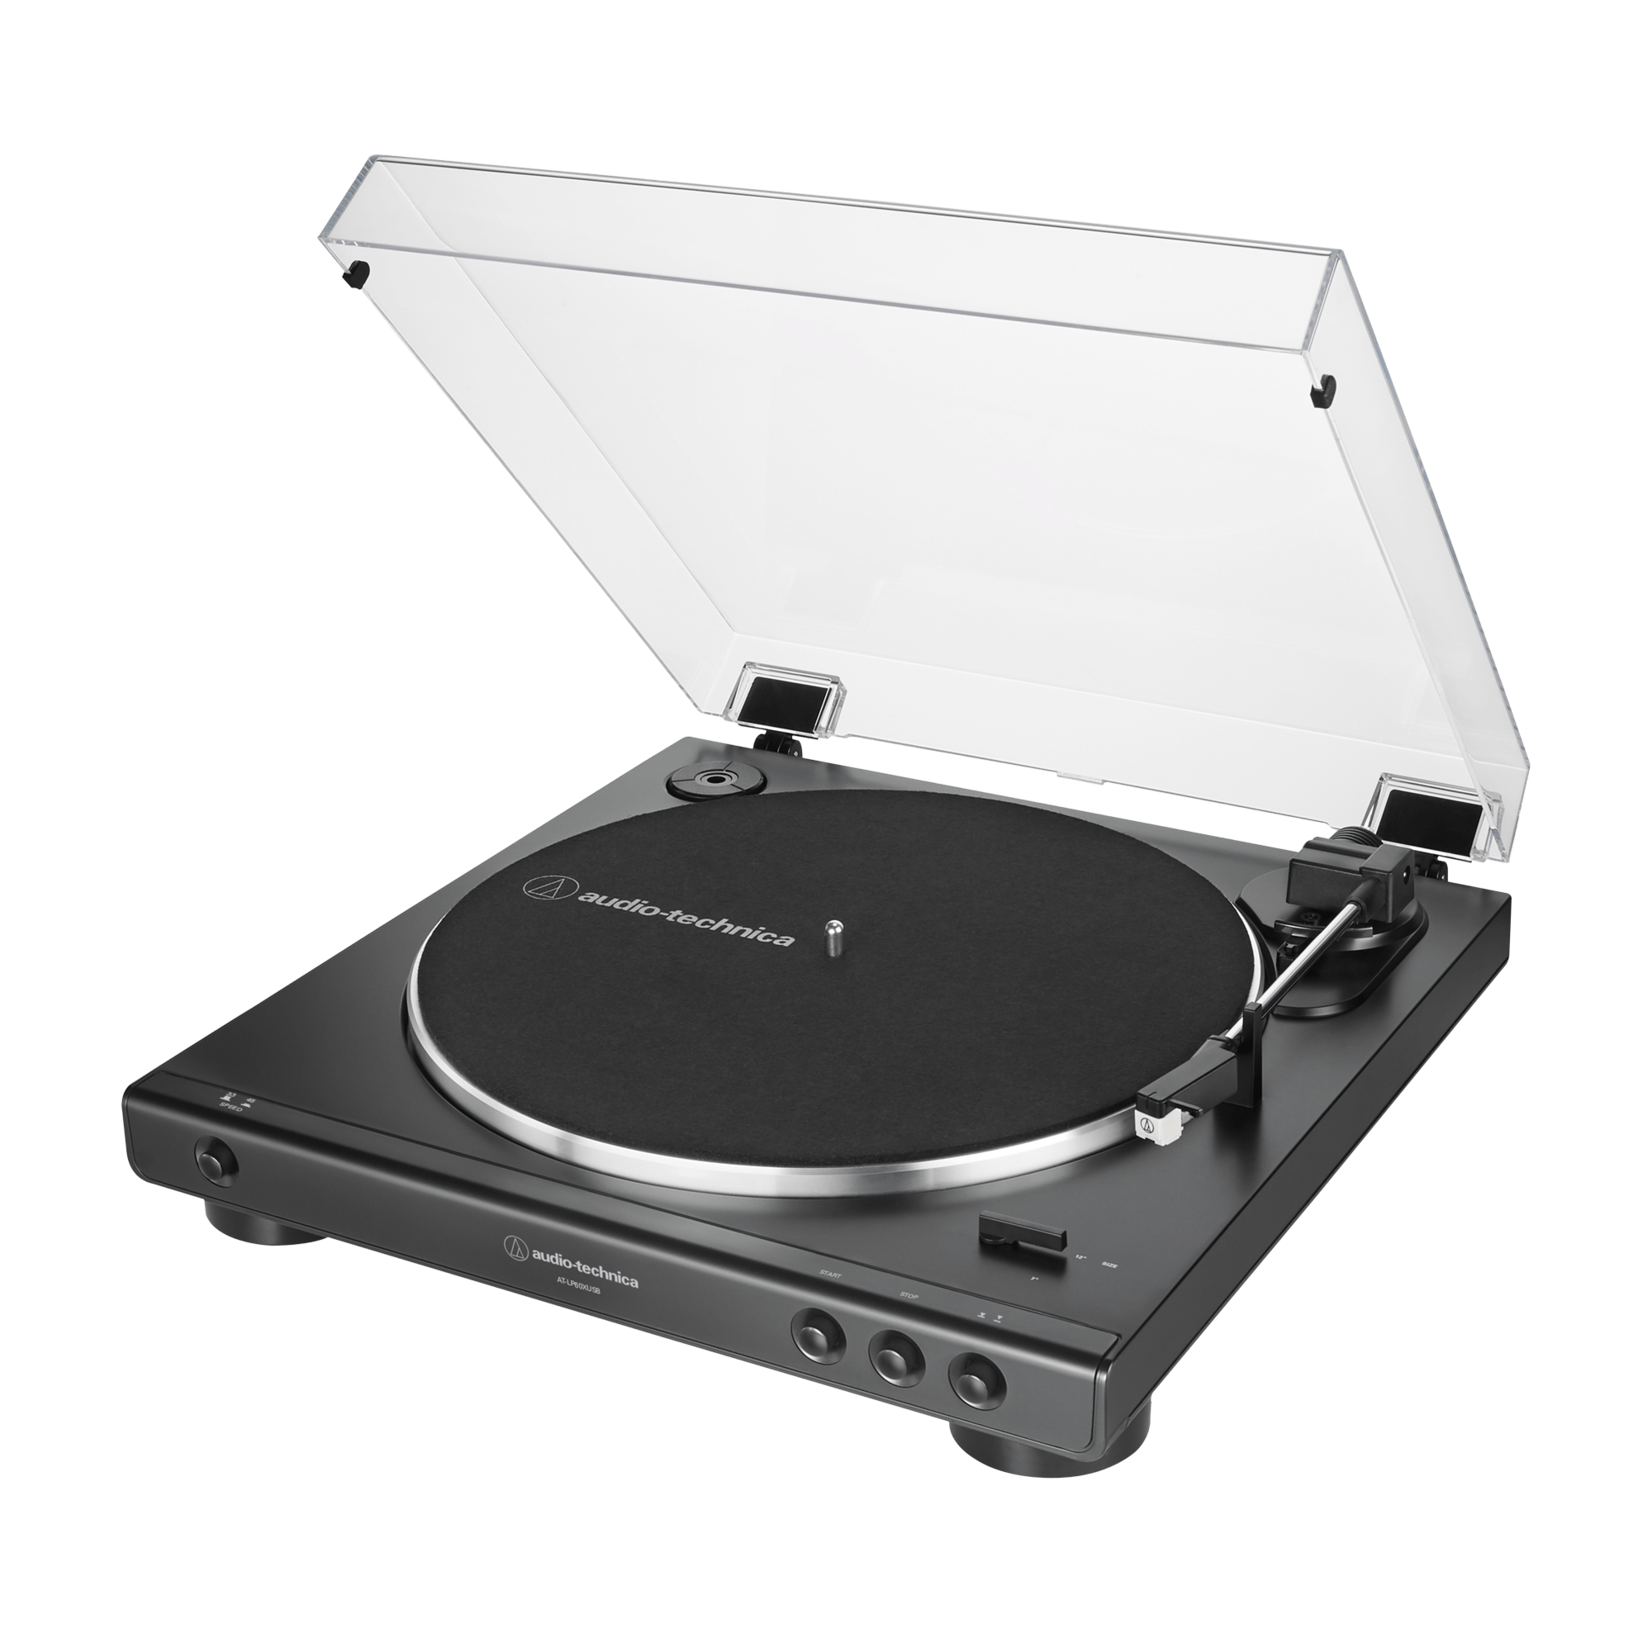 AUDIO-TECHNICA AT-LP60USB TURNTABLE WITH USB